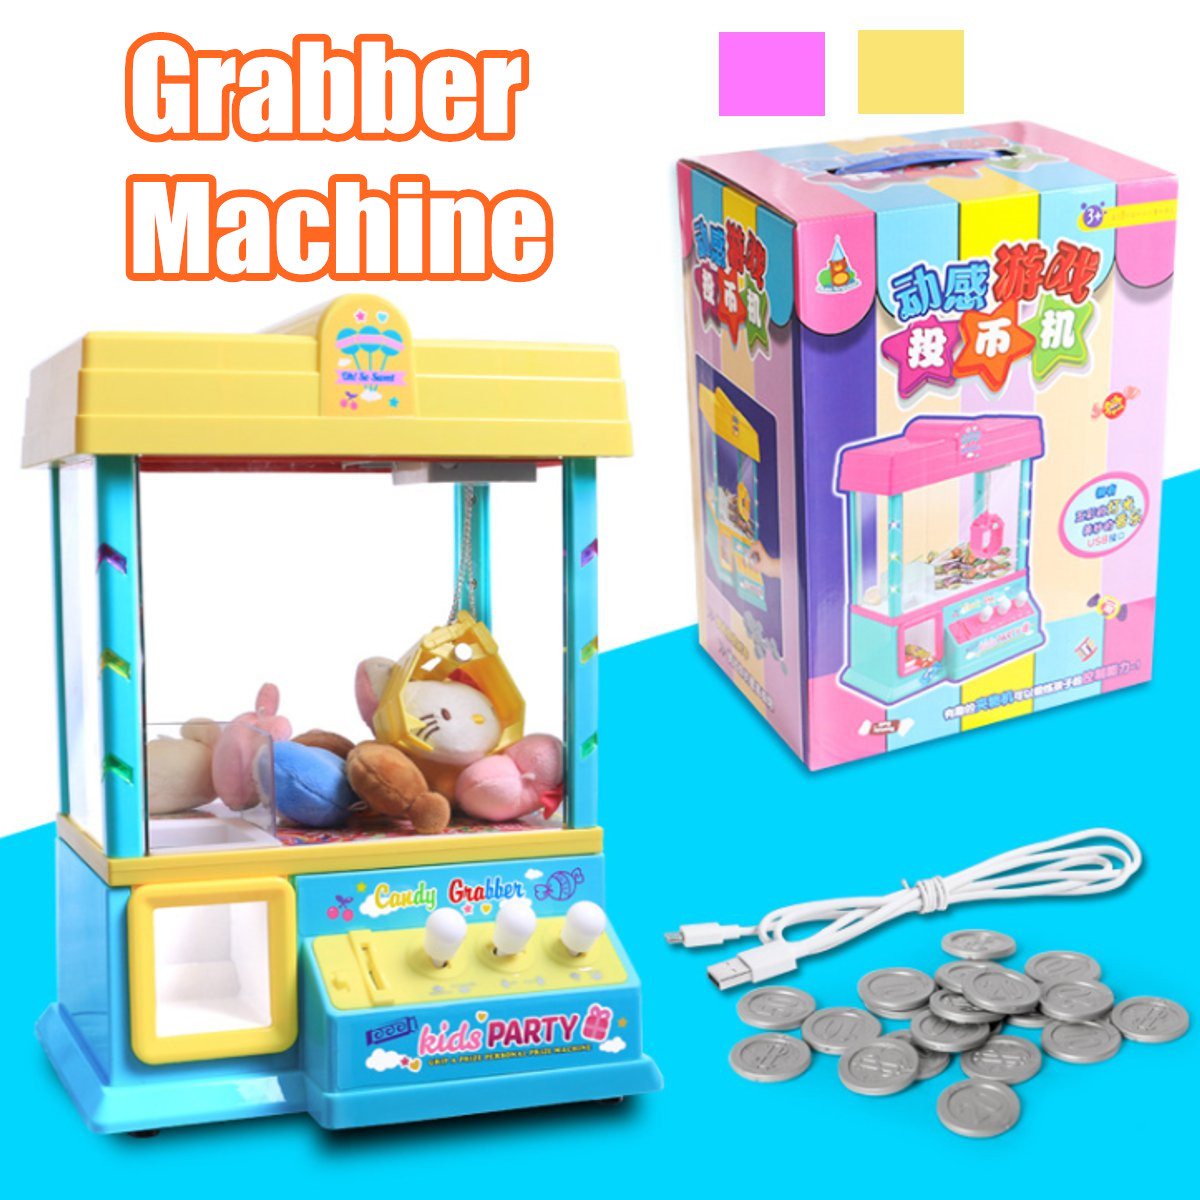 Professional Sale Coin Operated Games Doll Machine Carnival Style Vending Arcade Claw Candy Doll Prize Game Kid Toy Birthday Gift Power Tools